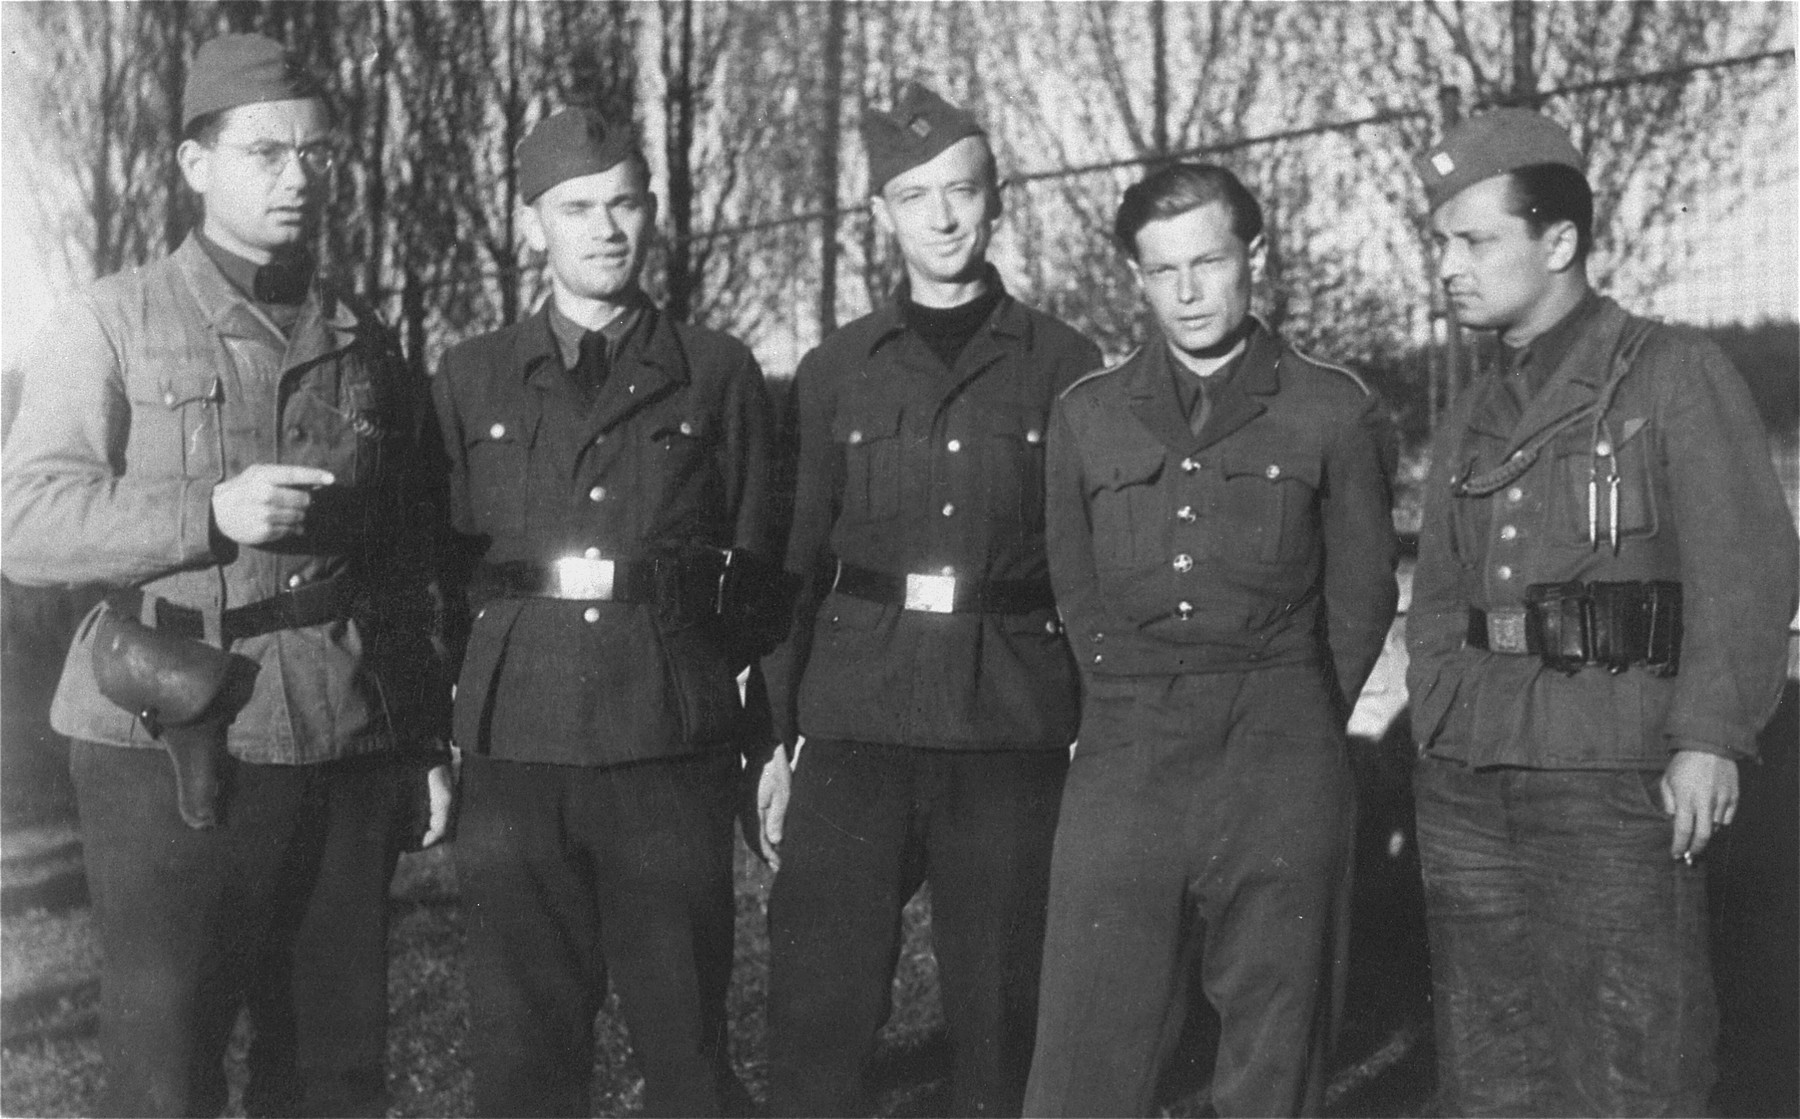 Group portrait of survivors of Auschwitz, Dachau, and Gross Rosen who were drafted into the Czech army right after the war.    Among those pictured is Franta Kohn (right).